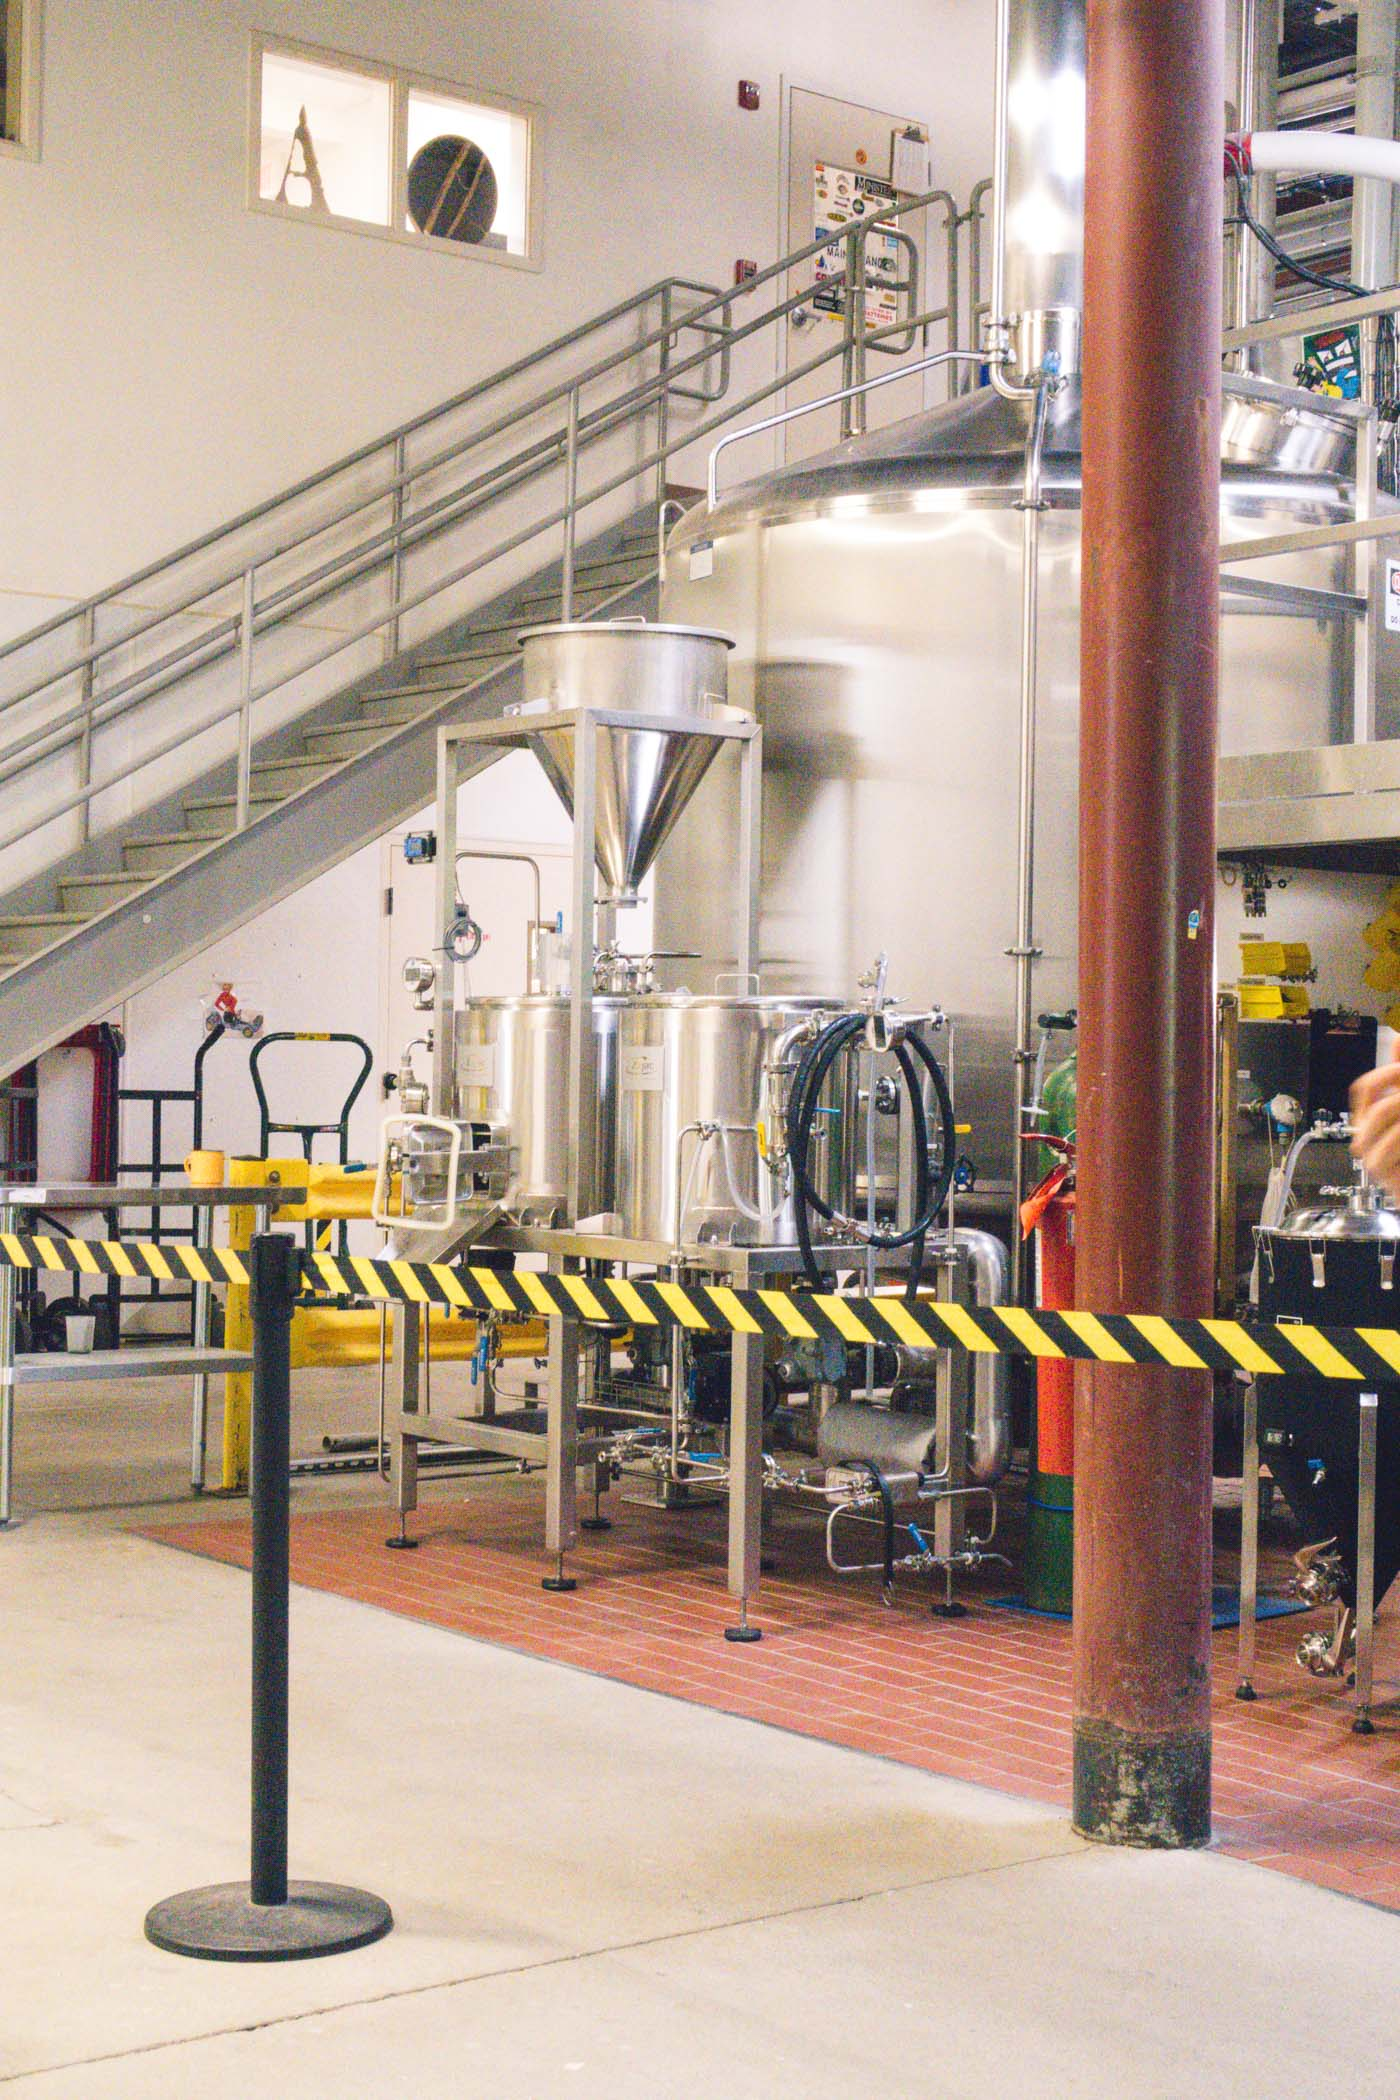 Machinery at Allagash Brewing Co., Portland, Maine